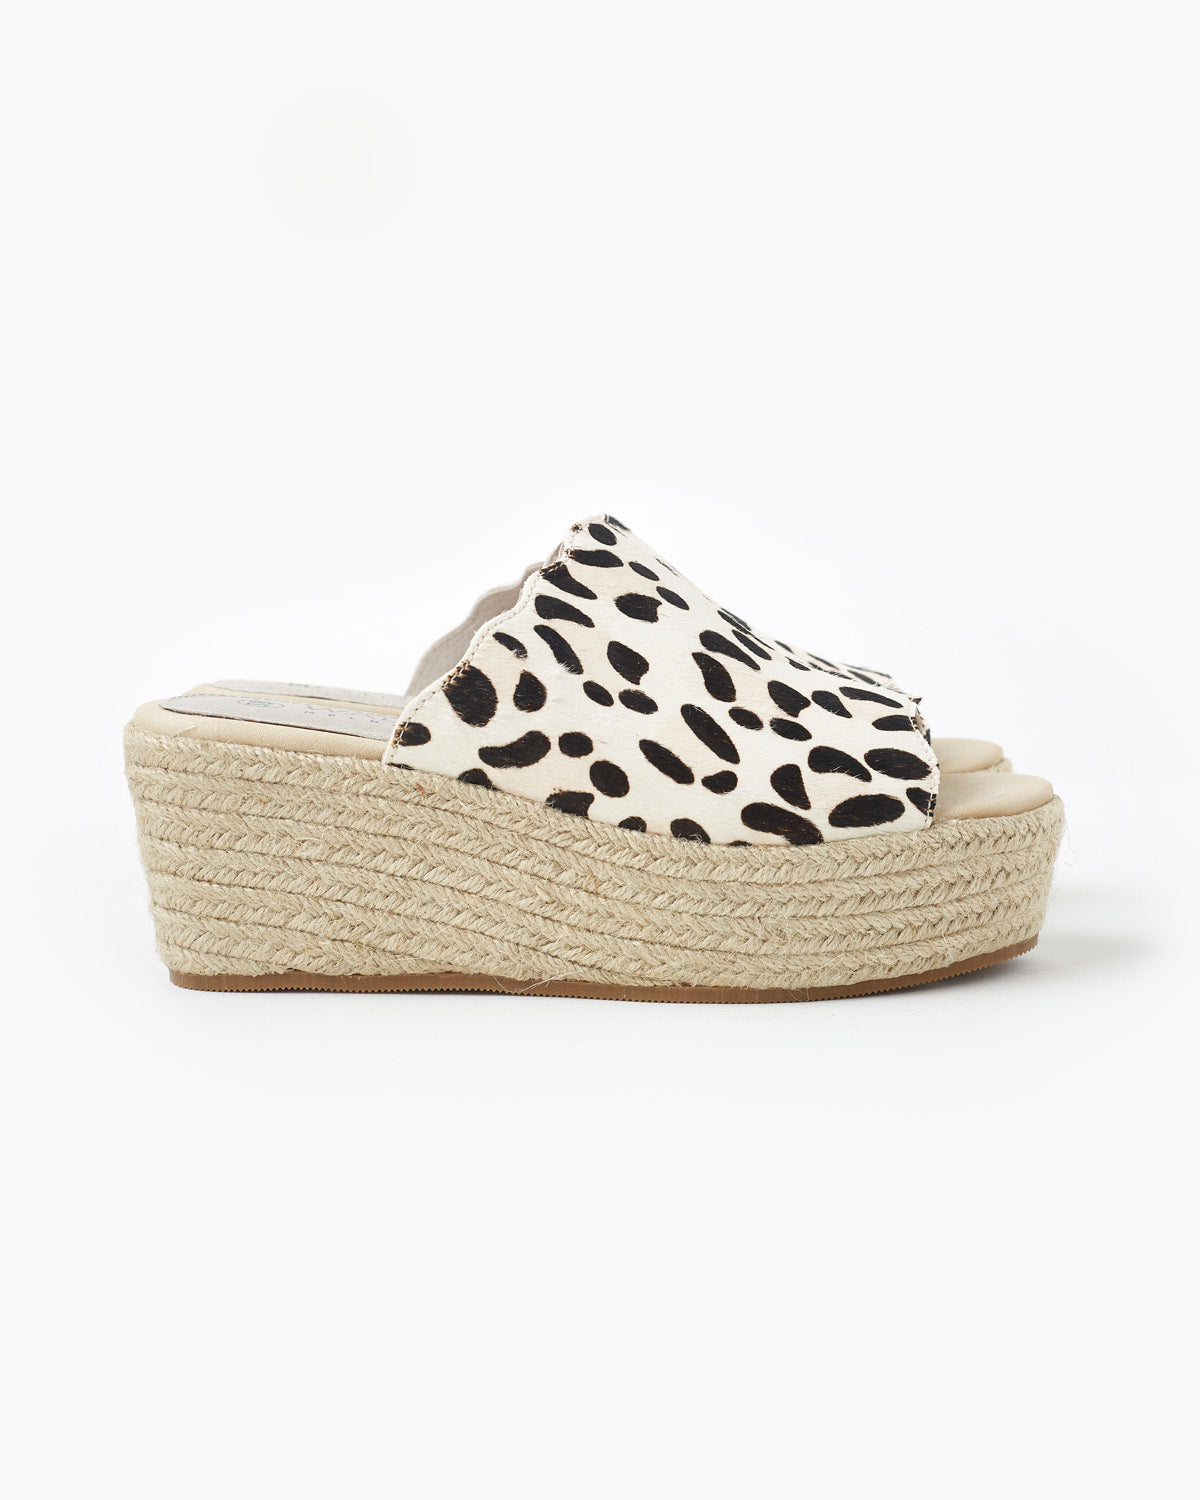 Chic Leather Flatform - White Leopard